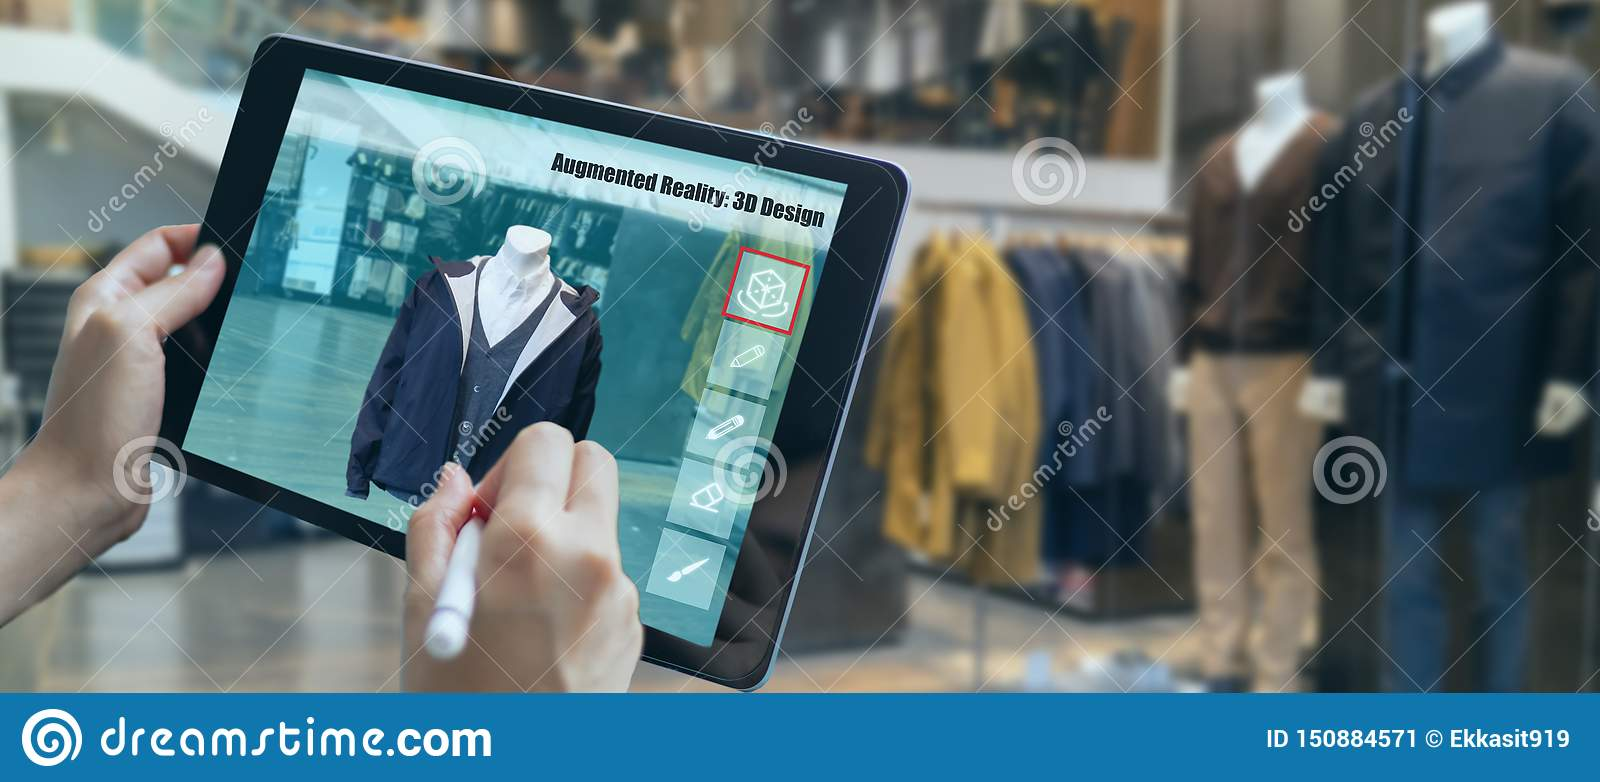 Augmented Mixed Virtual Reality To Design A Clothes In 3d Fashion Design Software Program Creating Virtual True To Life Garment V Stock Image Image Of Digital Engineering 150884571